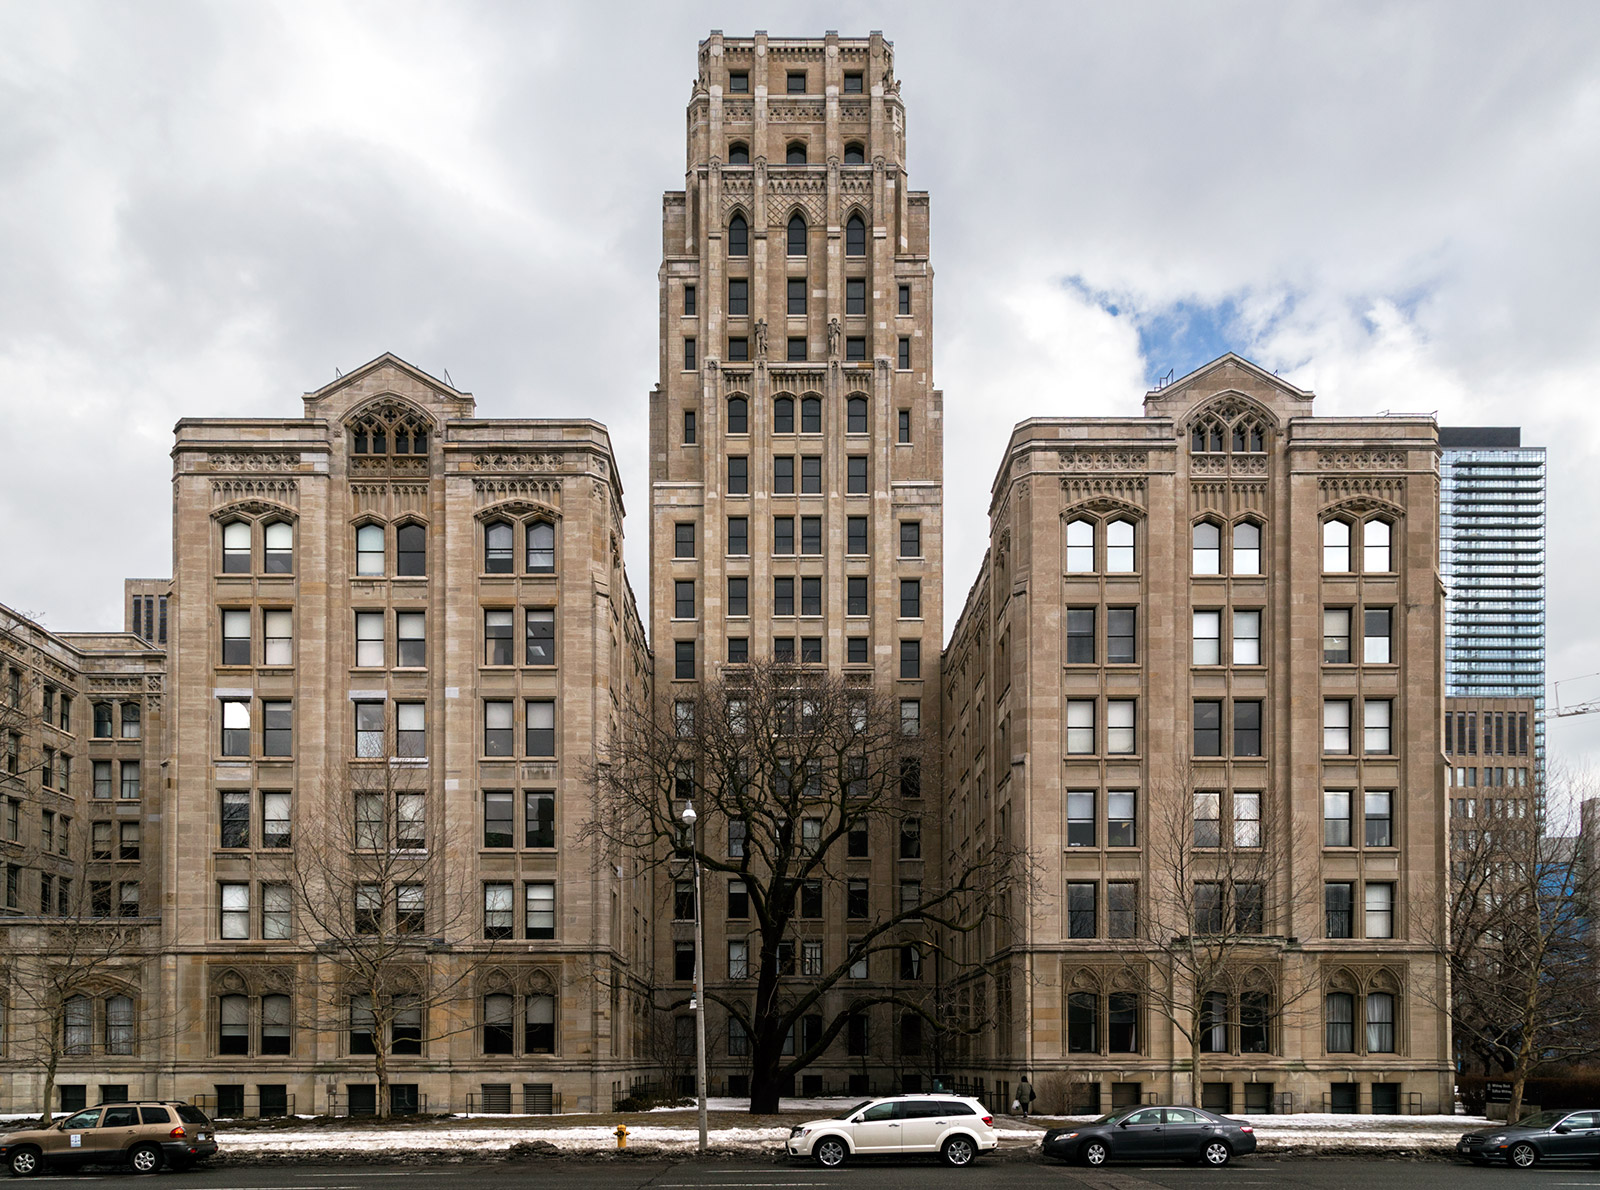 20150119. The tower of the modern gothic-art deco Whitney Block